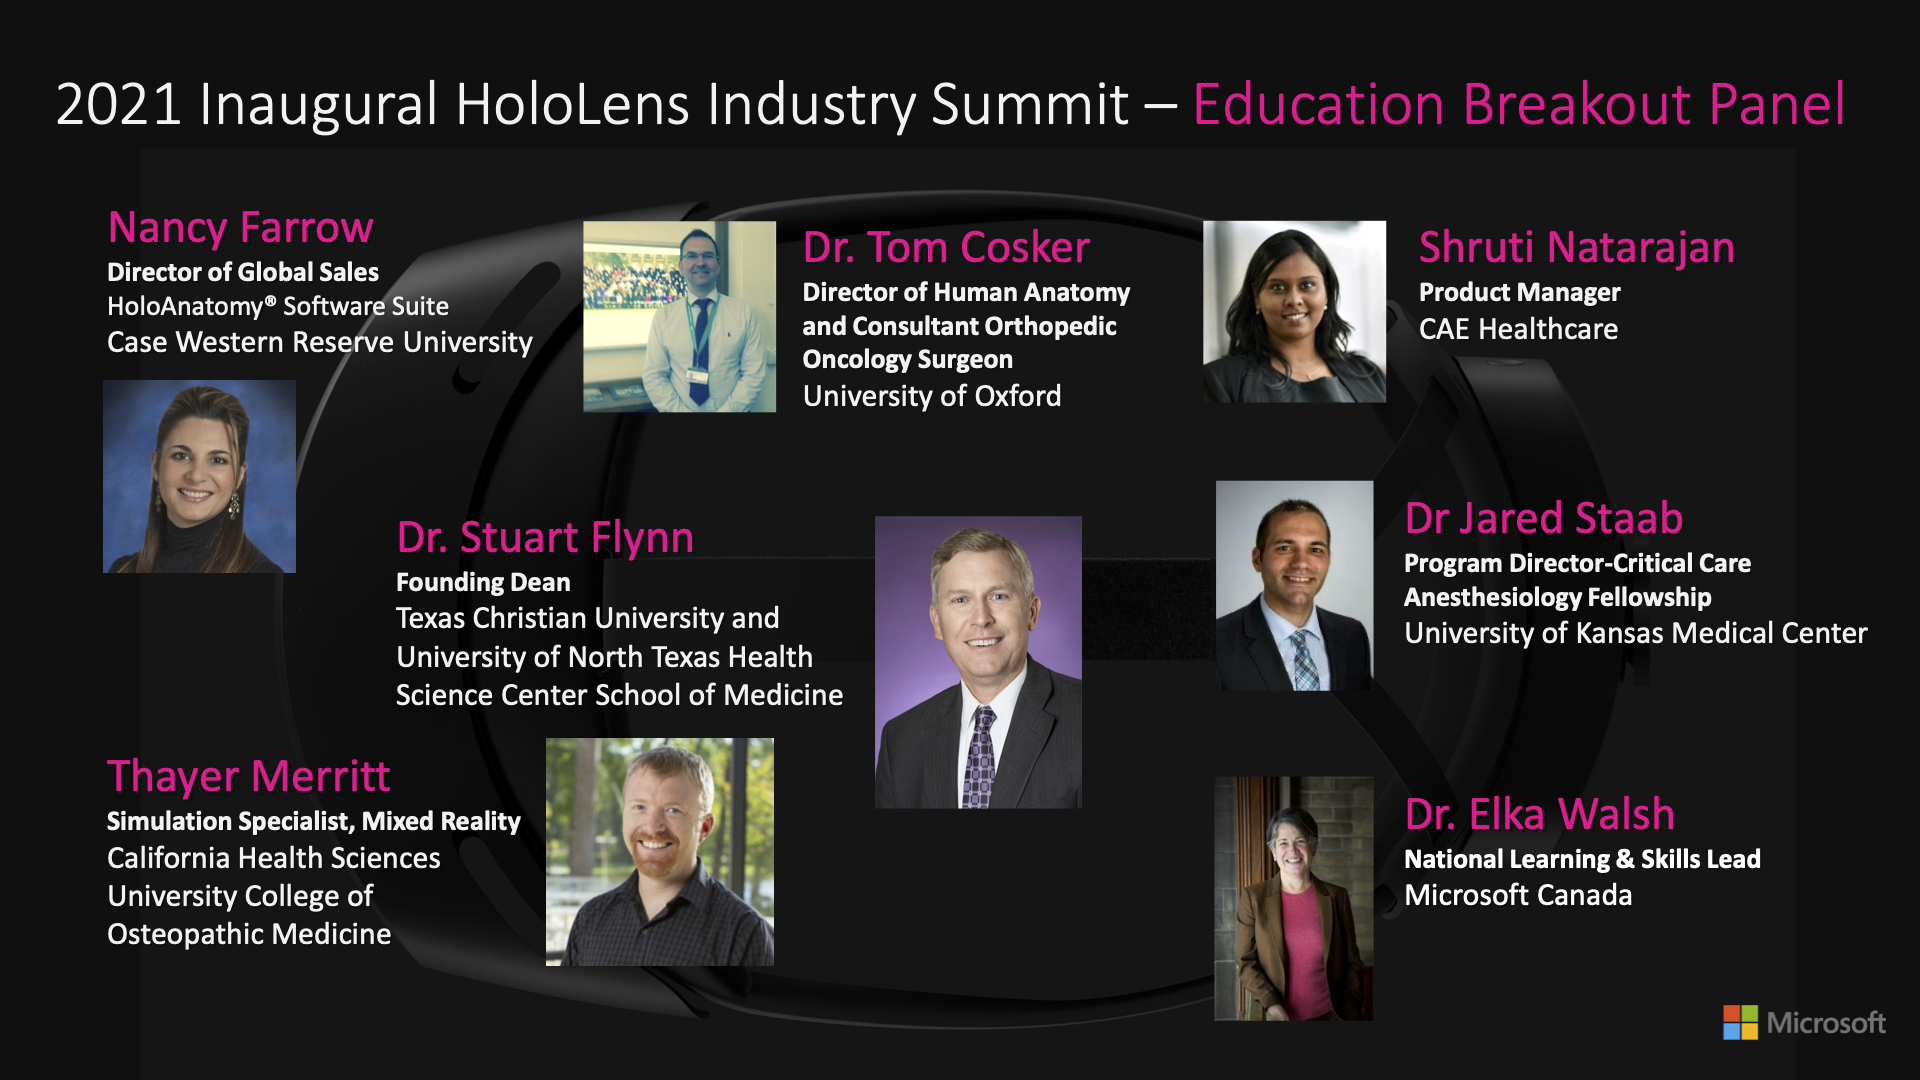 HoloLens Summit Breakout Slide Education Panel Speakers